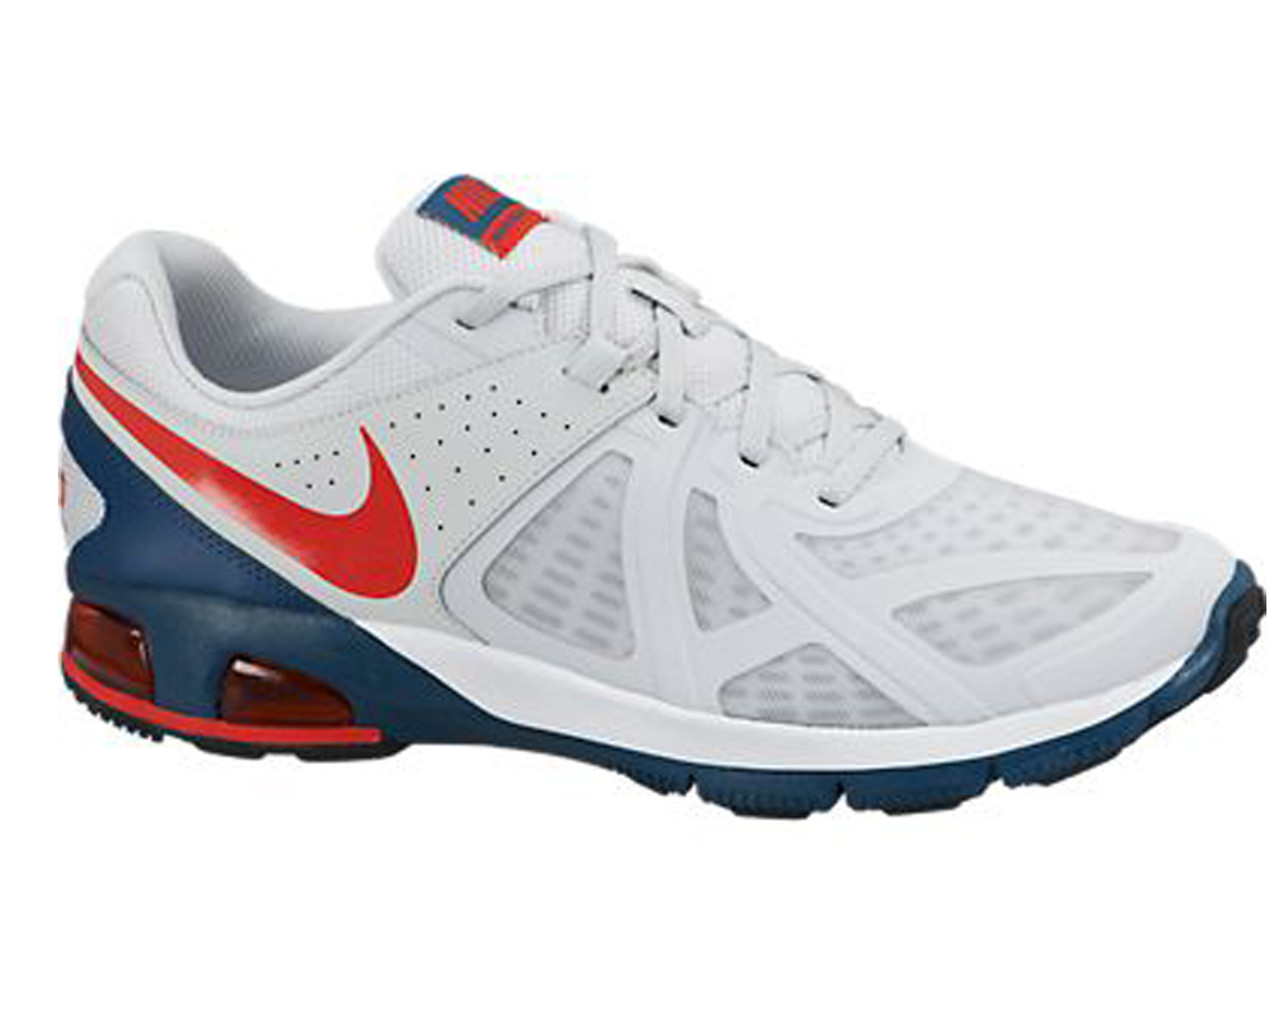 6e082b4d2f1f6 Nike Men's Air Max Run Lite 5 Running Shoes White/Red/Blue